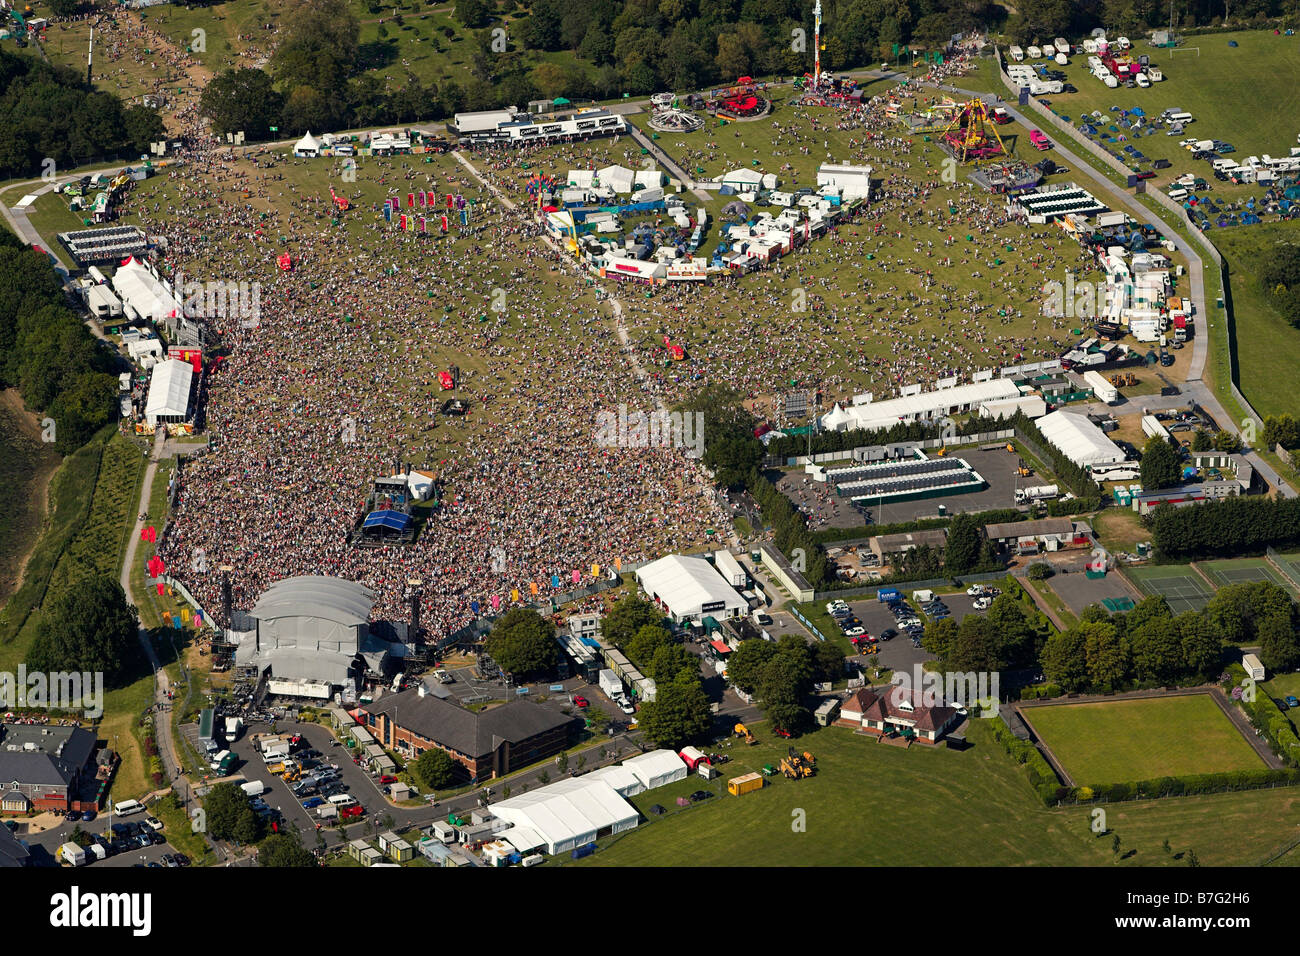 Aerial view of The Isle of Wight Festival Stock Photo